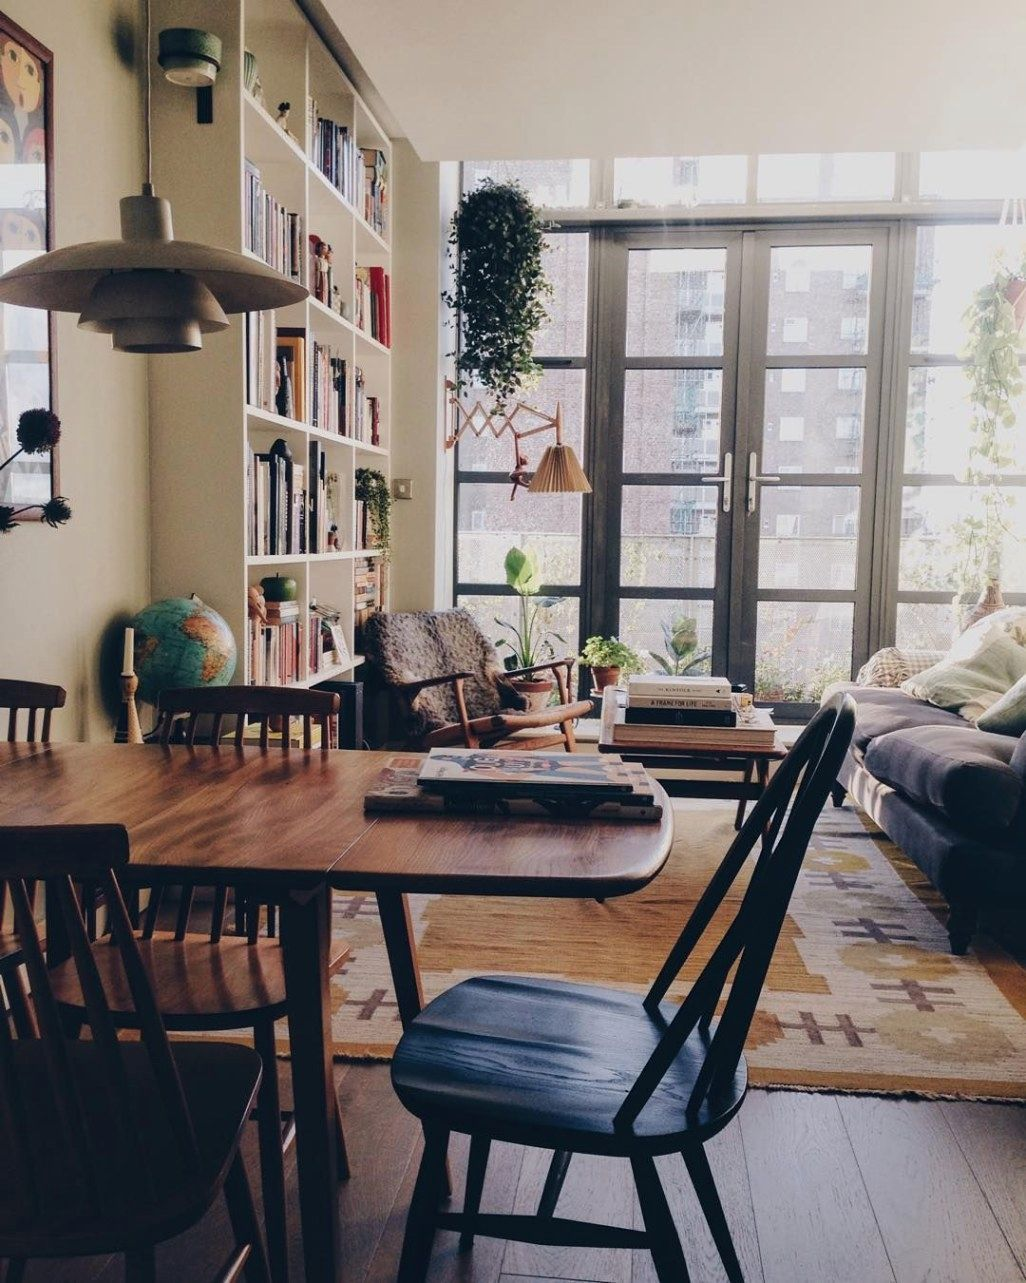 12 Inspirations For Home Improvement With Spanish Home Decorating Ideas: Terrific Innovations When You're Thinking Of Home Improvment. Home Improvement UK.